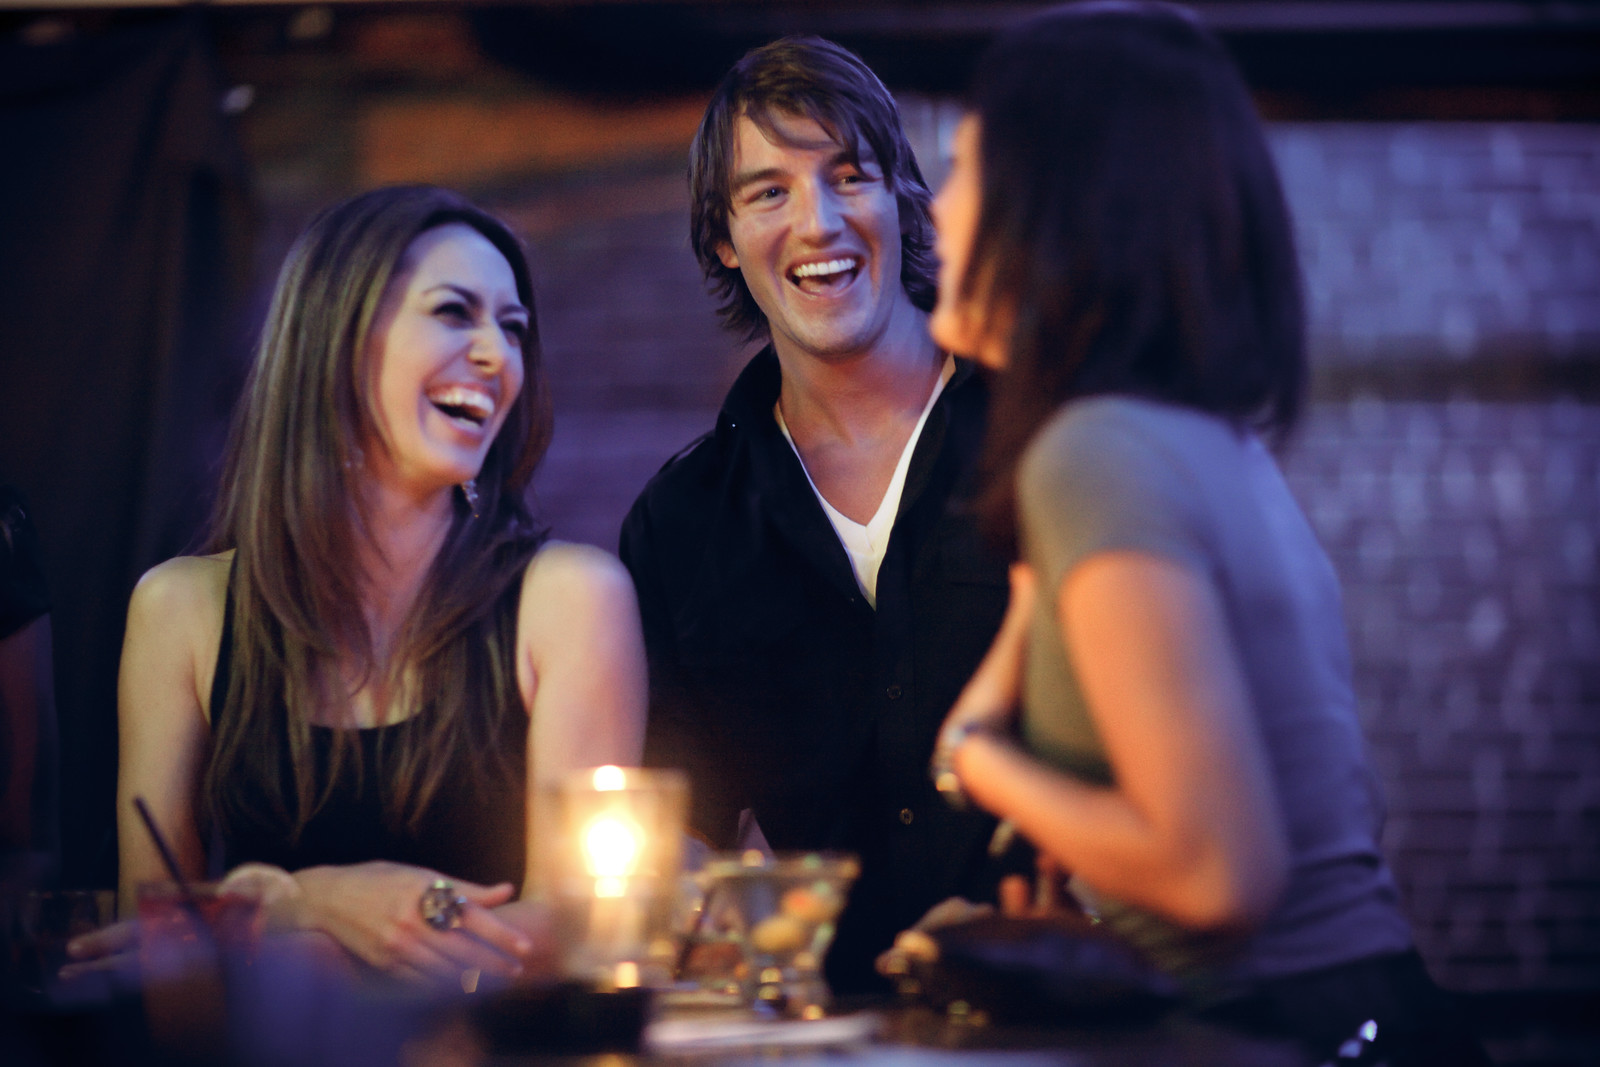 A group of friends laughing.